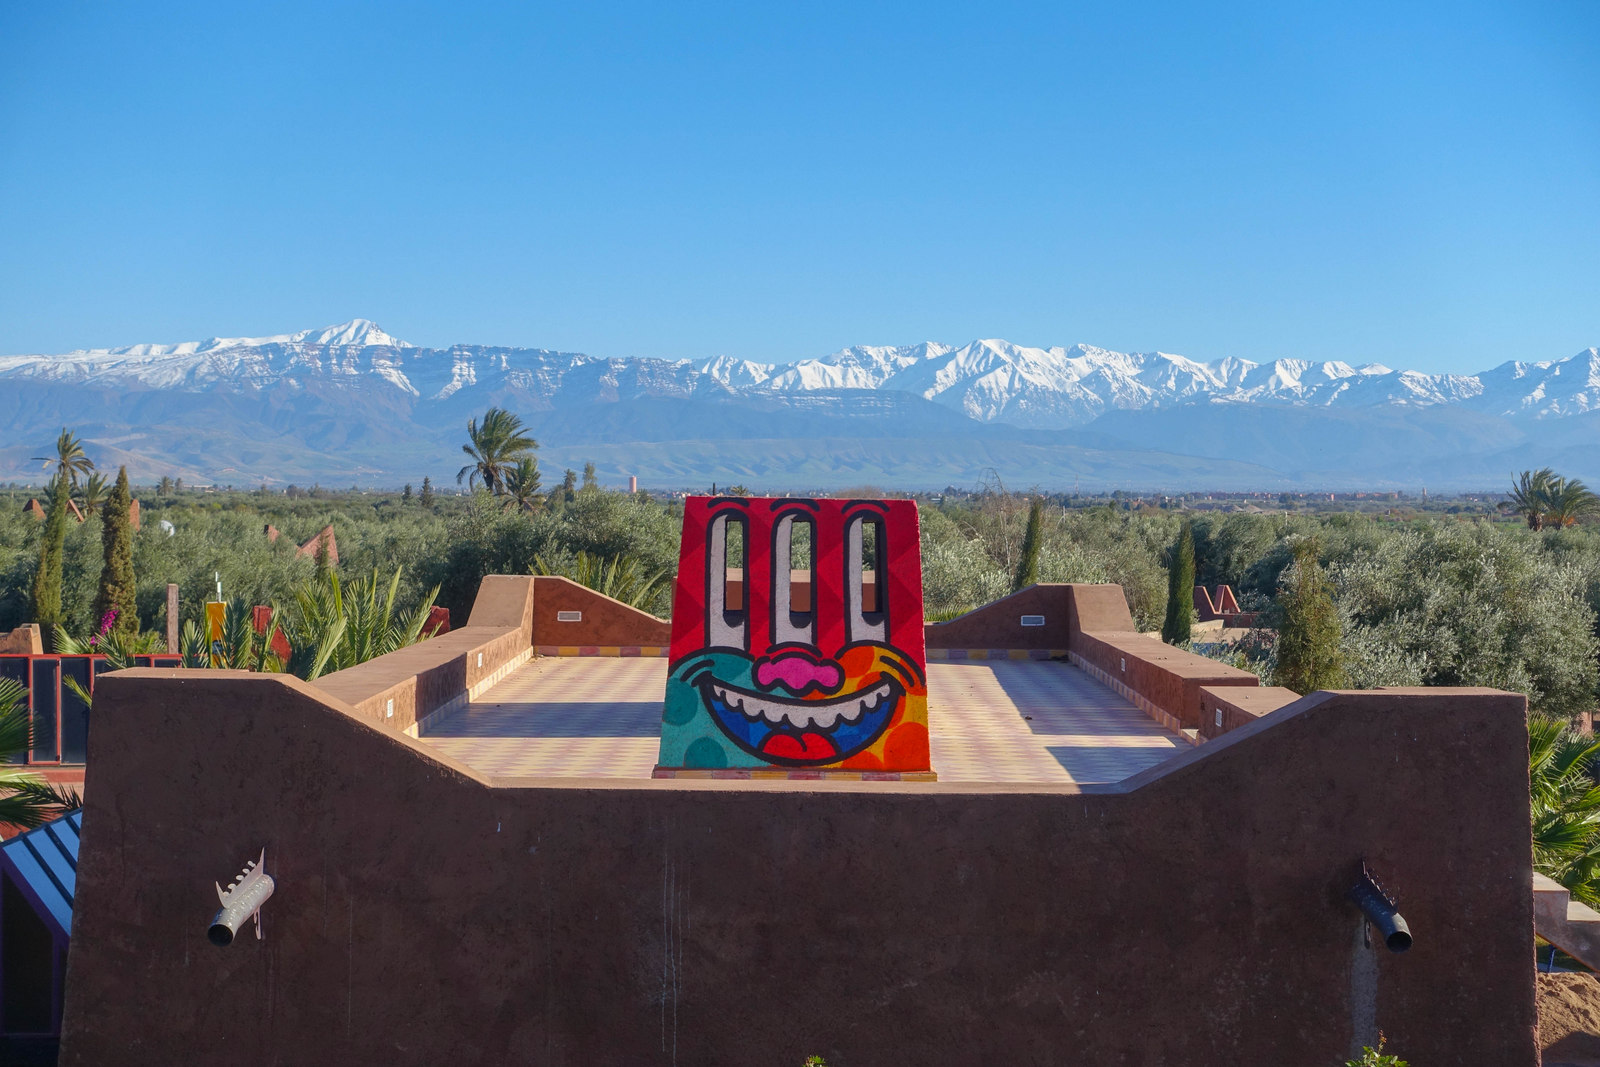 """jardin rouge, eine urban art oasis in marrakesch"" – fotoausstellung mirage, berlin"